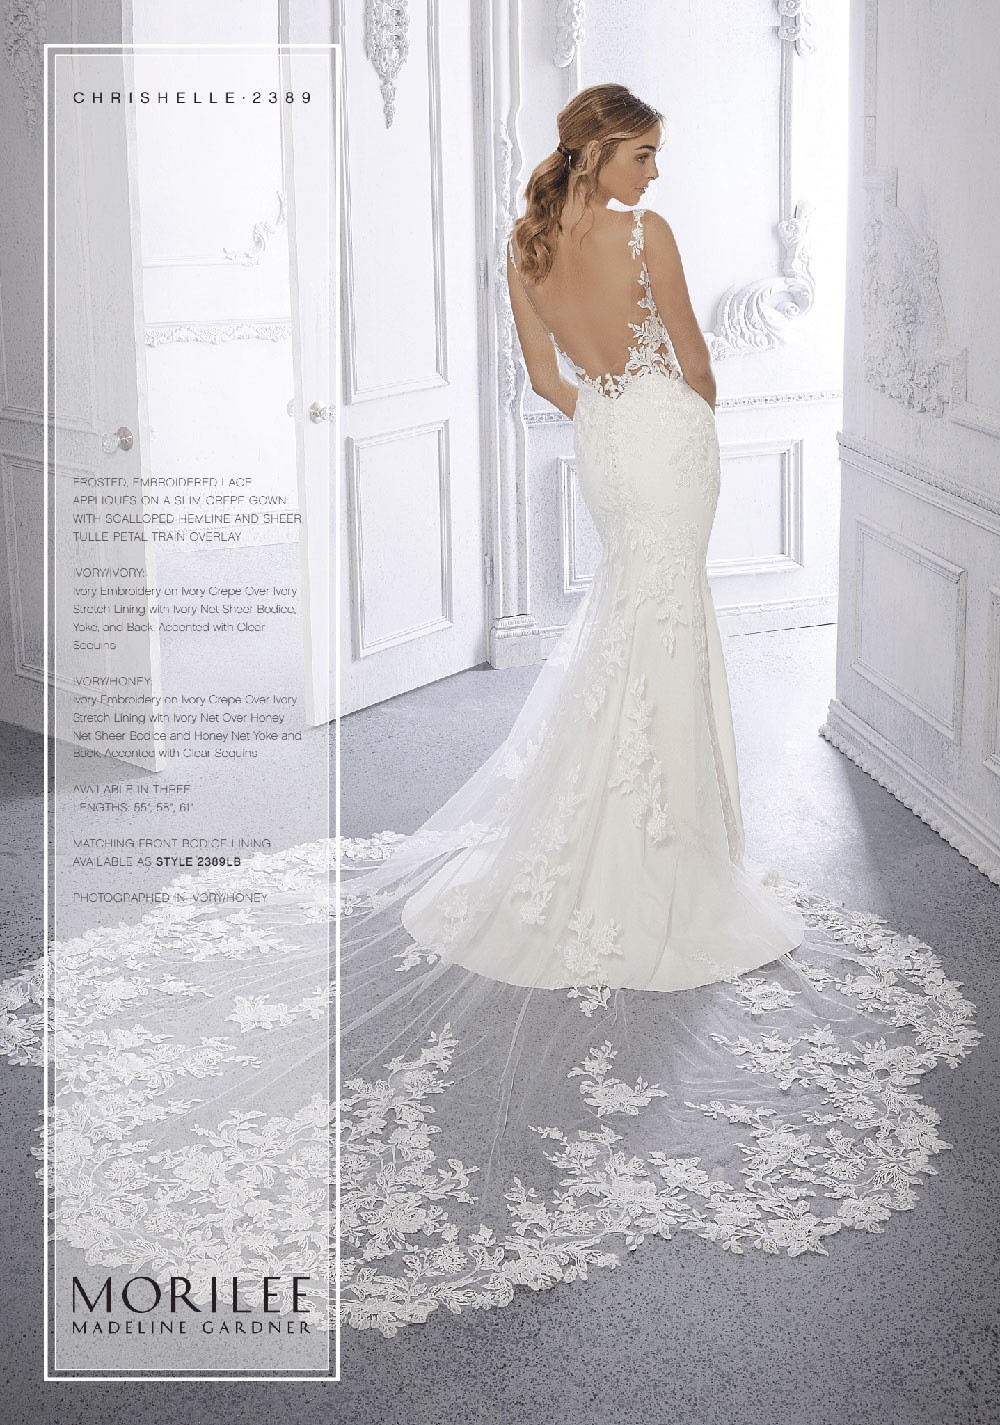 Morilee Boutique - Bridal Connection Stone Oak - Chrishelle Gown Back